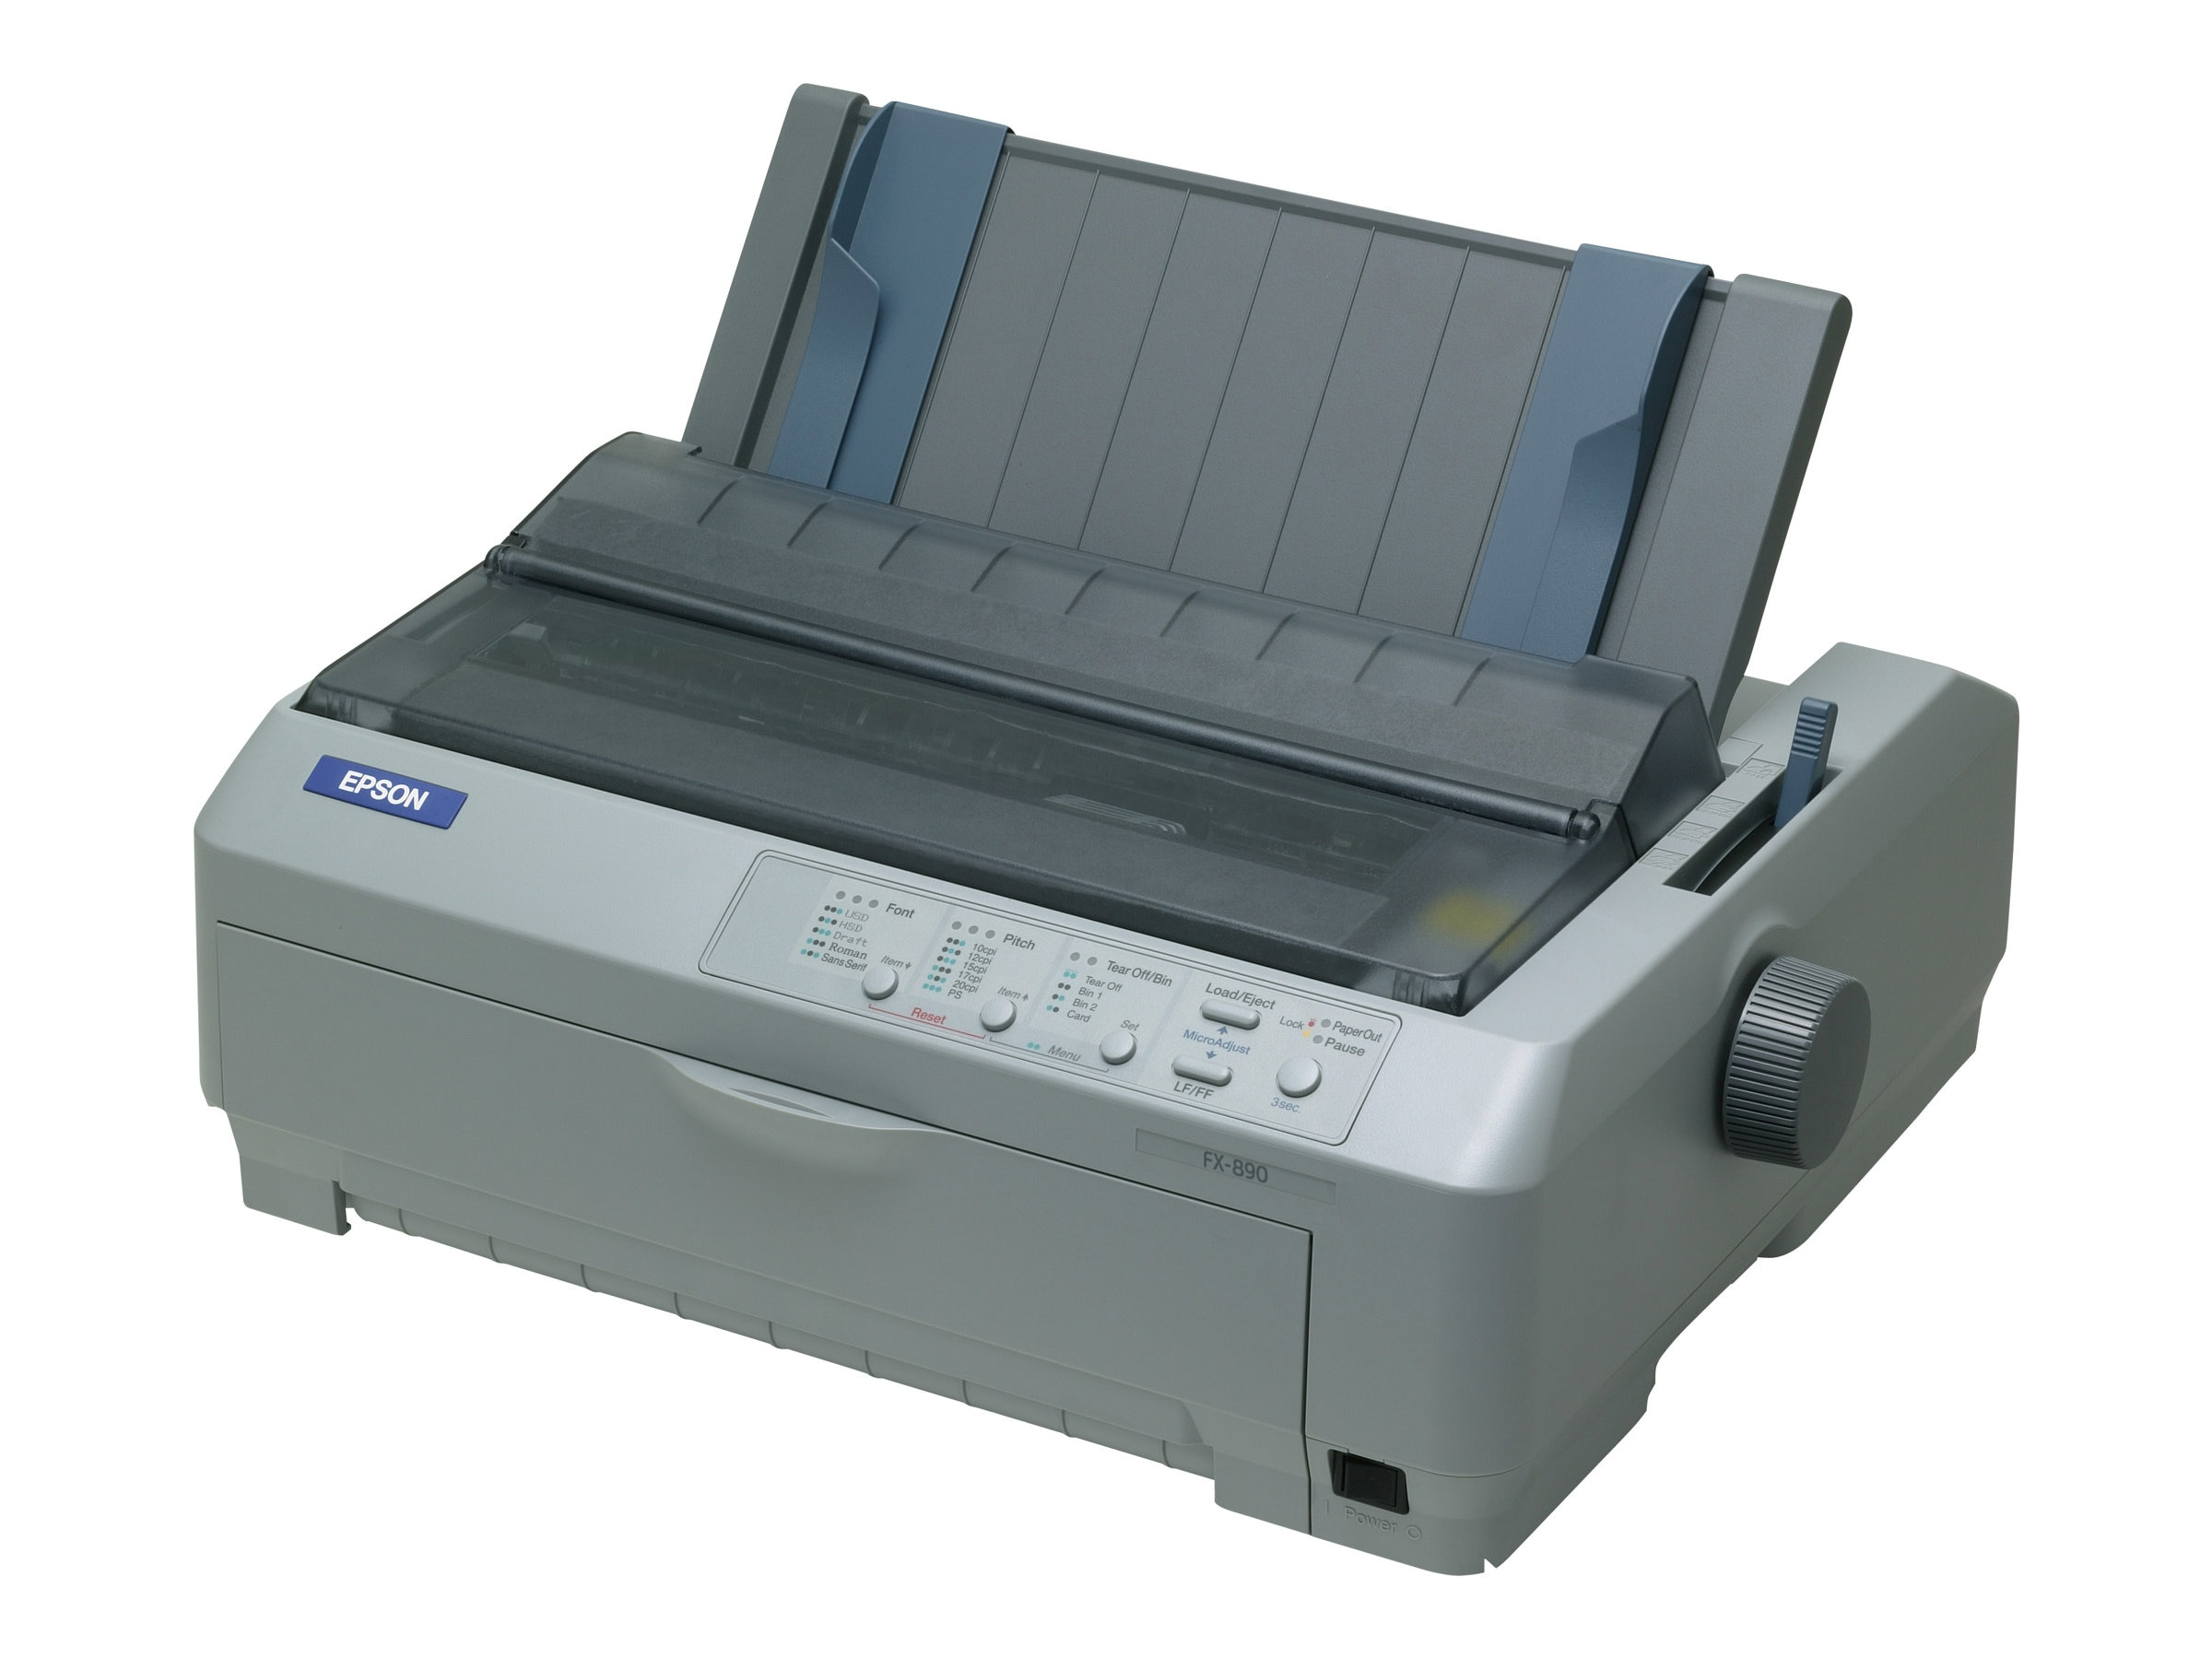 Epson FX-890 Impact Printer, C11C524001, 461929, Printers - Dot-matrix